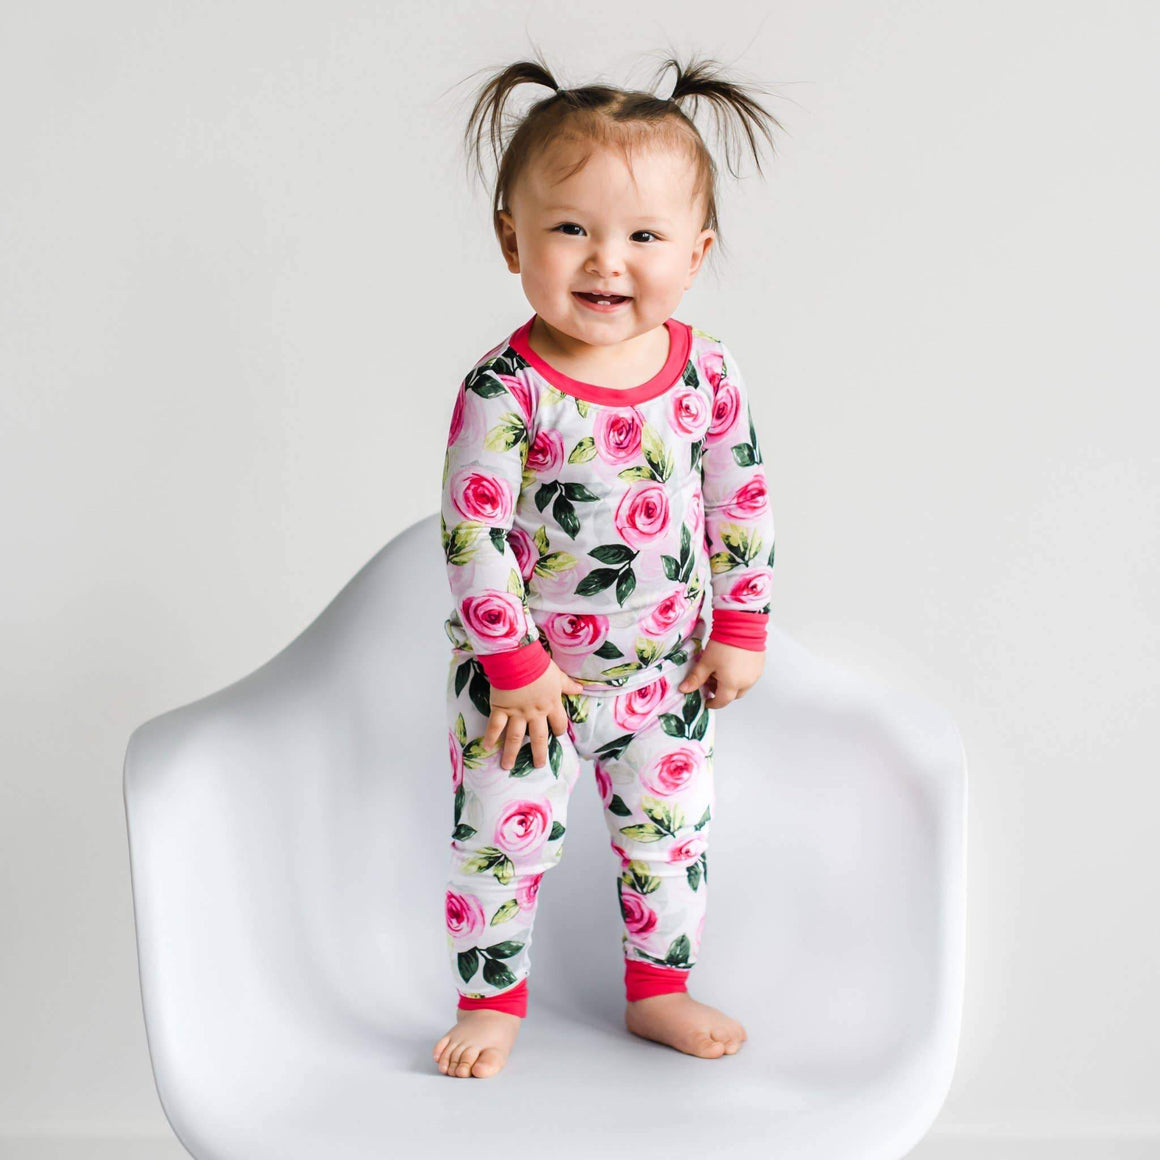 Little Sleepies - Roses bamboo two-piece pajama set Little Sleepies